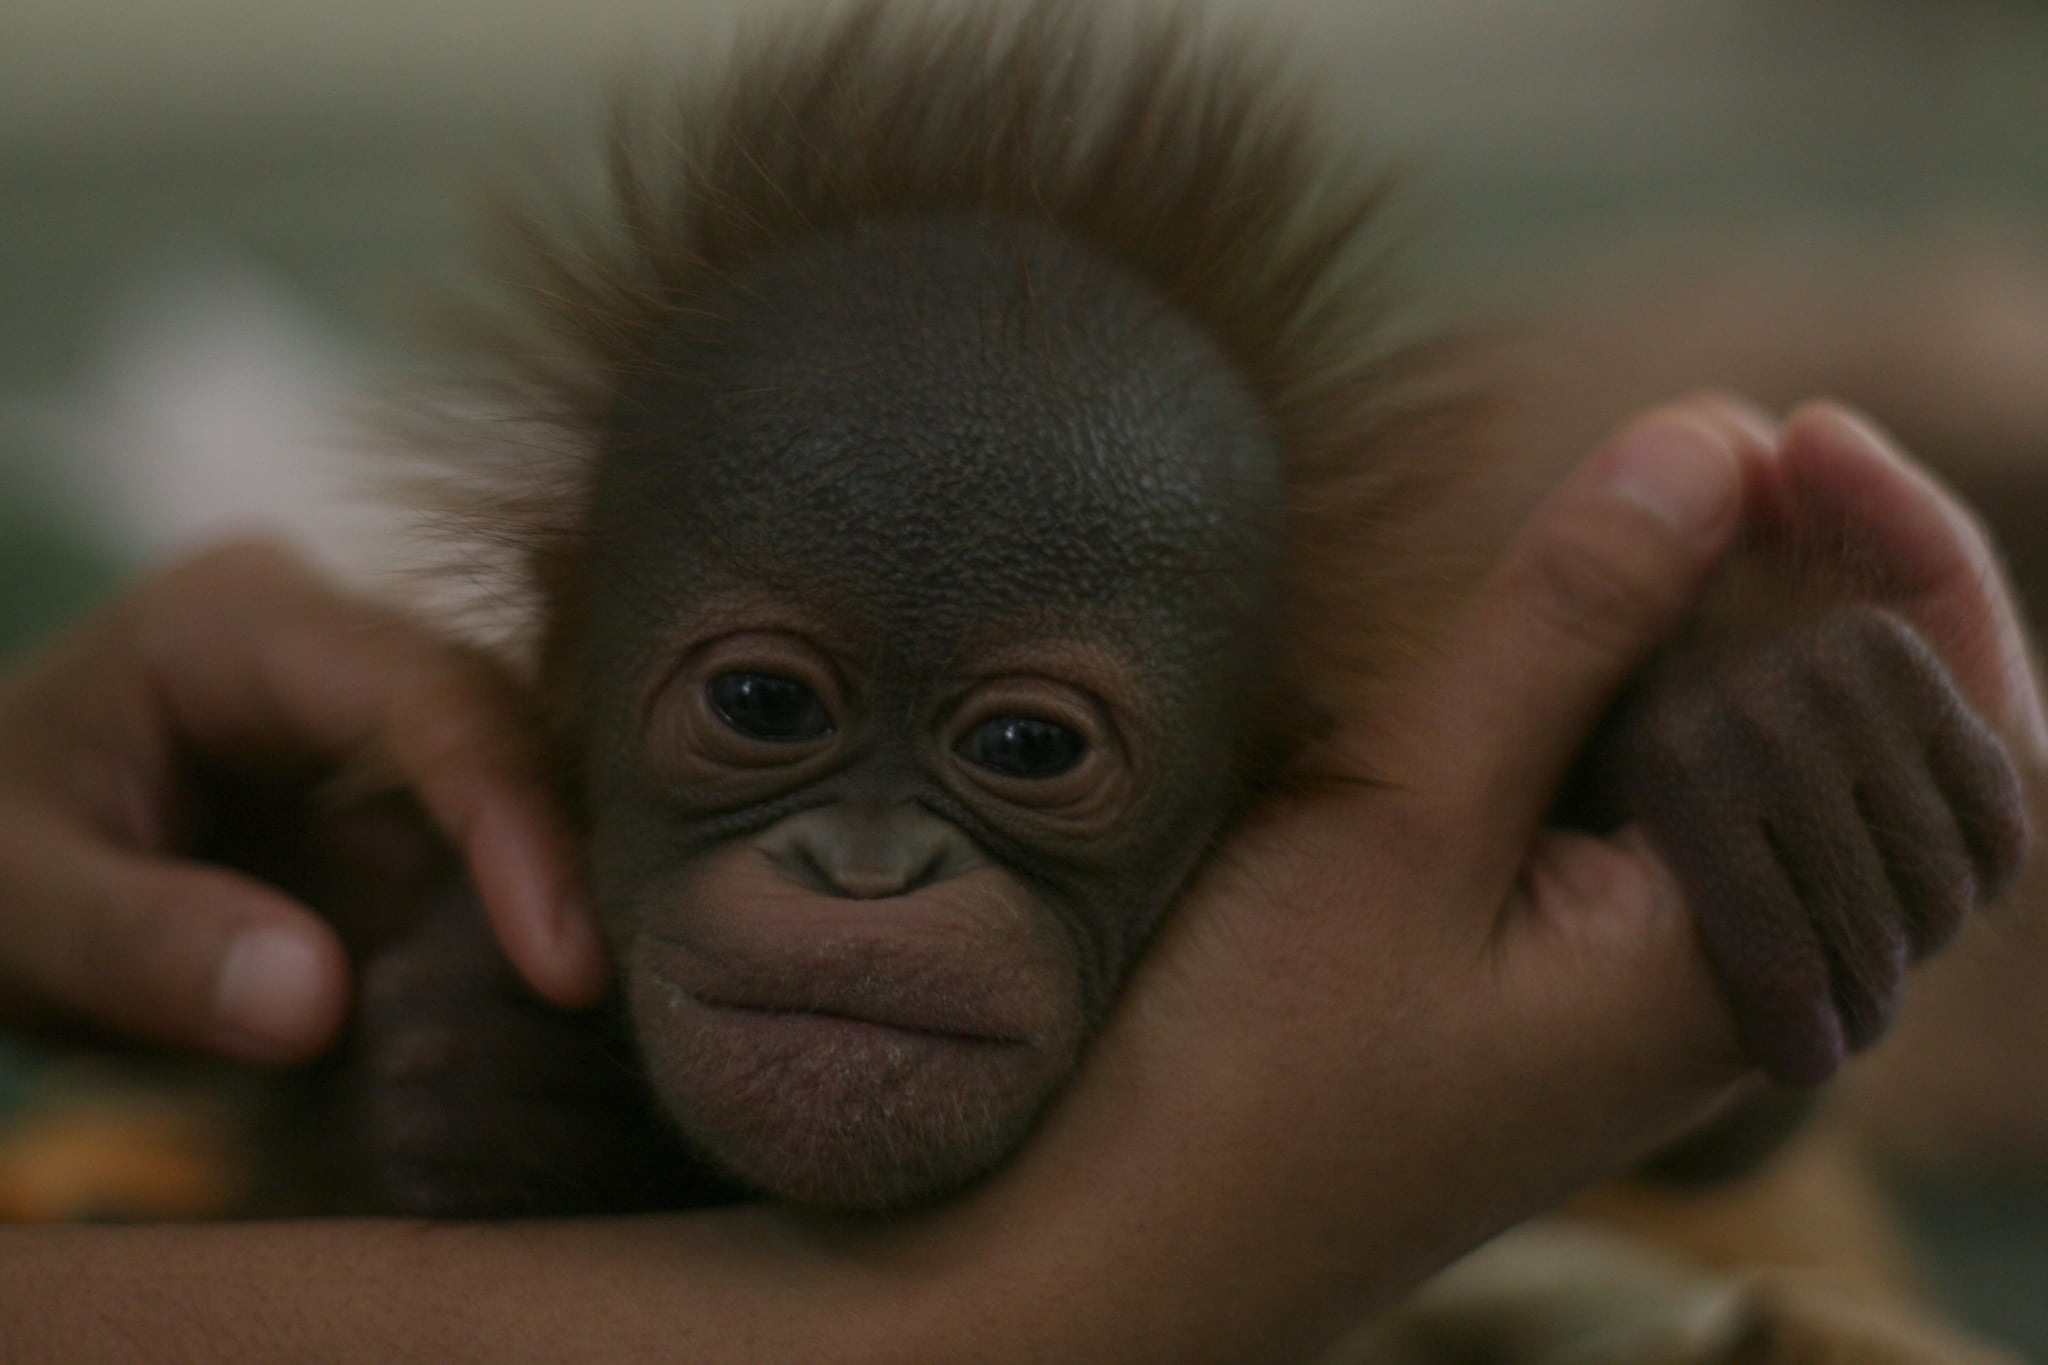 Baby orang-utan in Indonesia at the Taman Safari, which plays an important role in breeding rare and endangered animals.